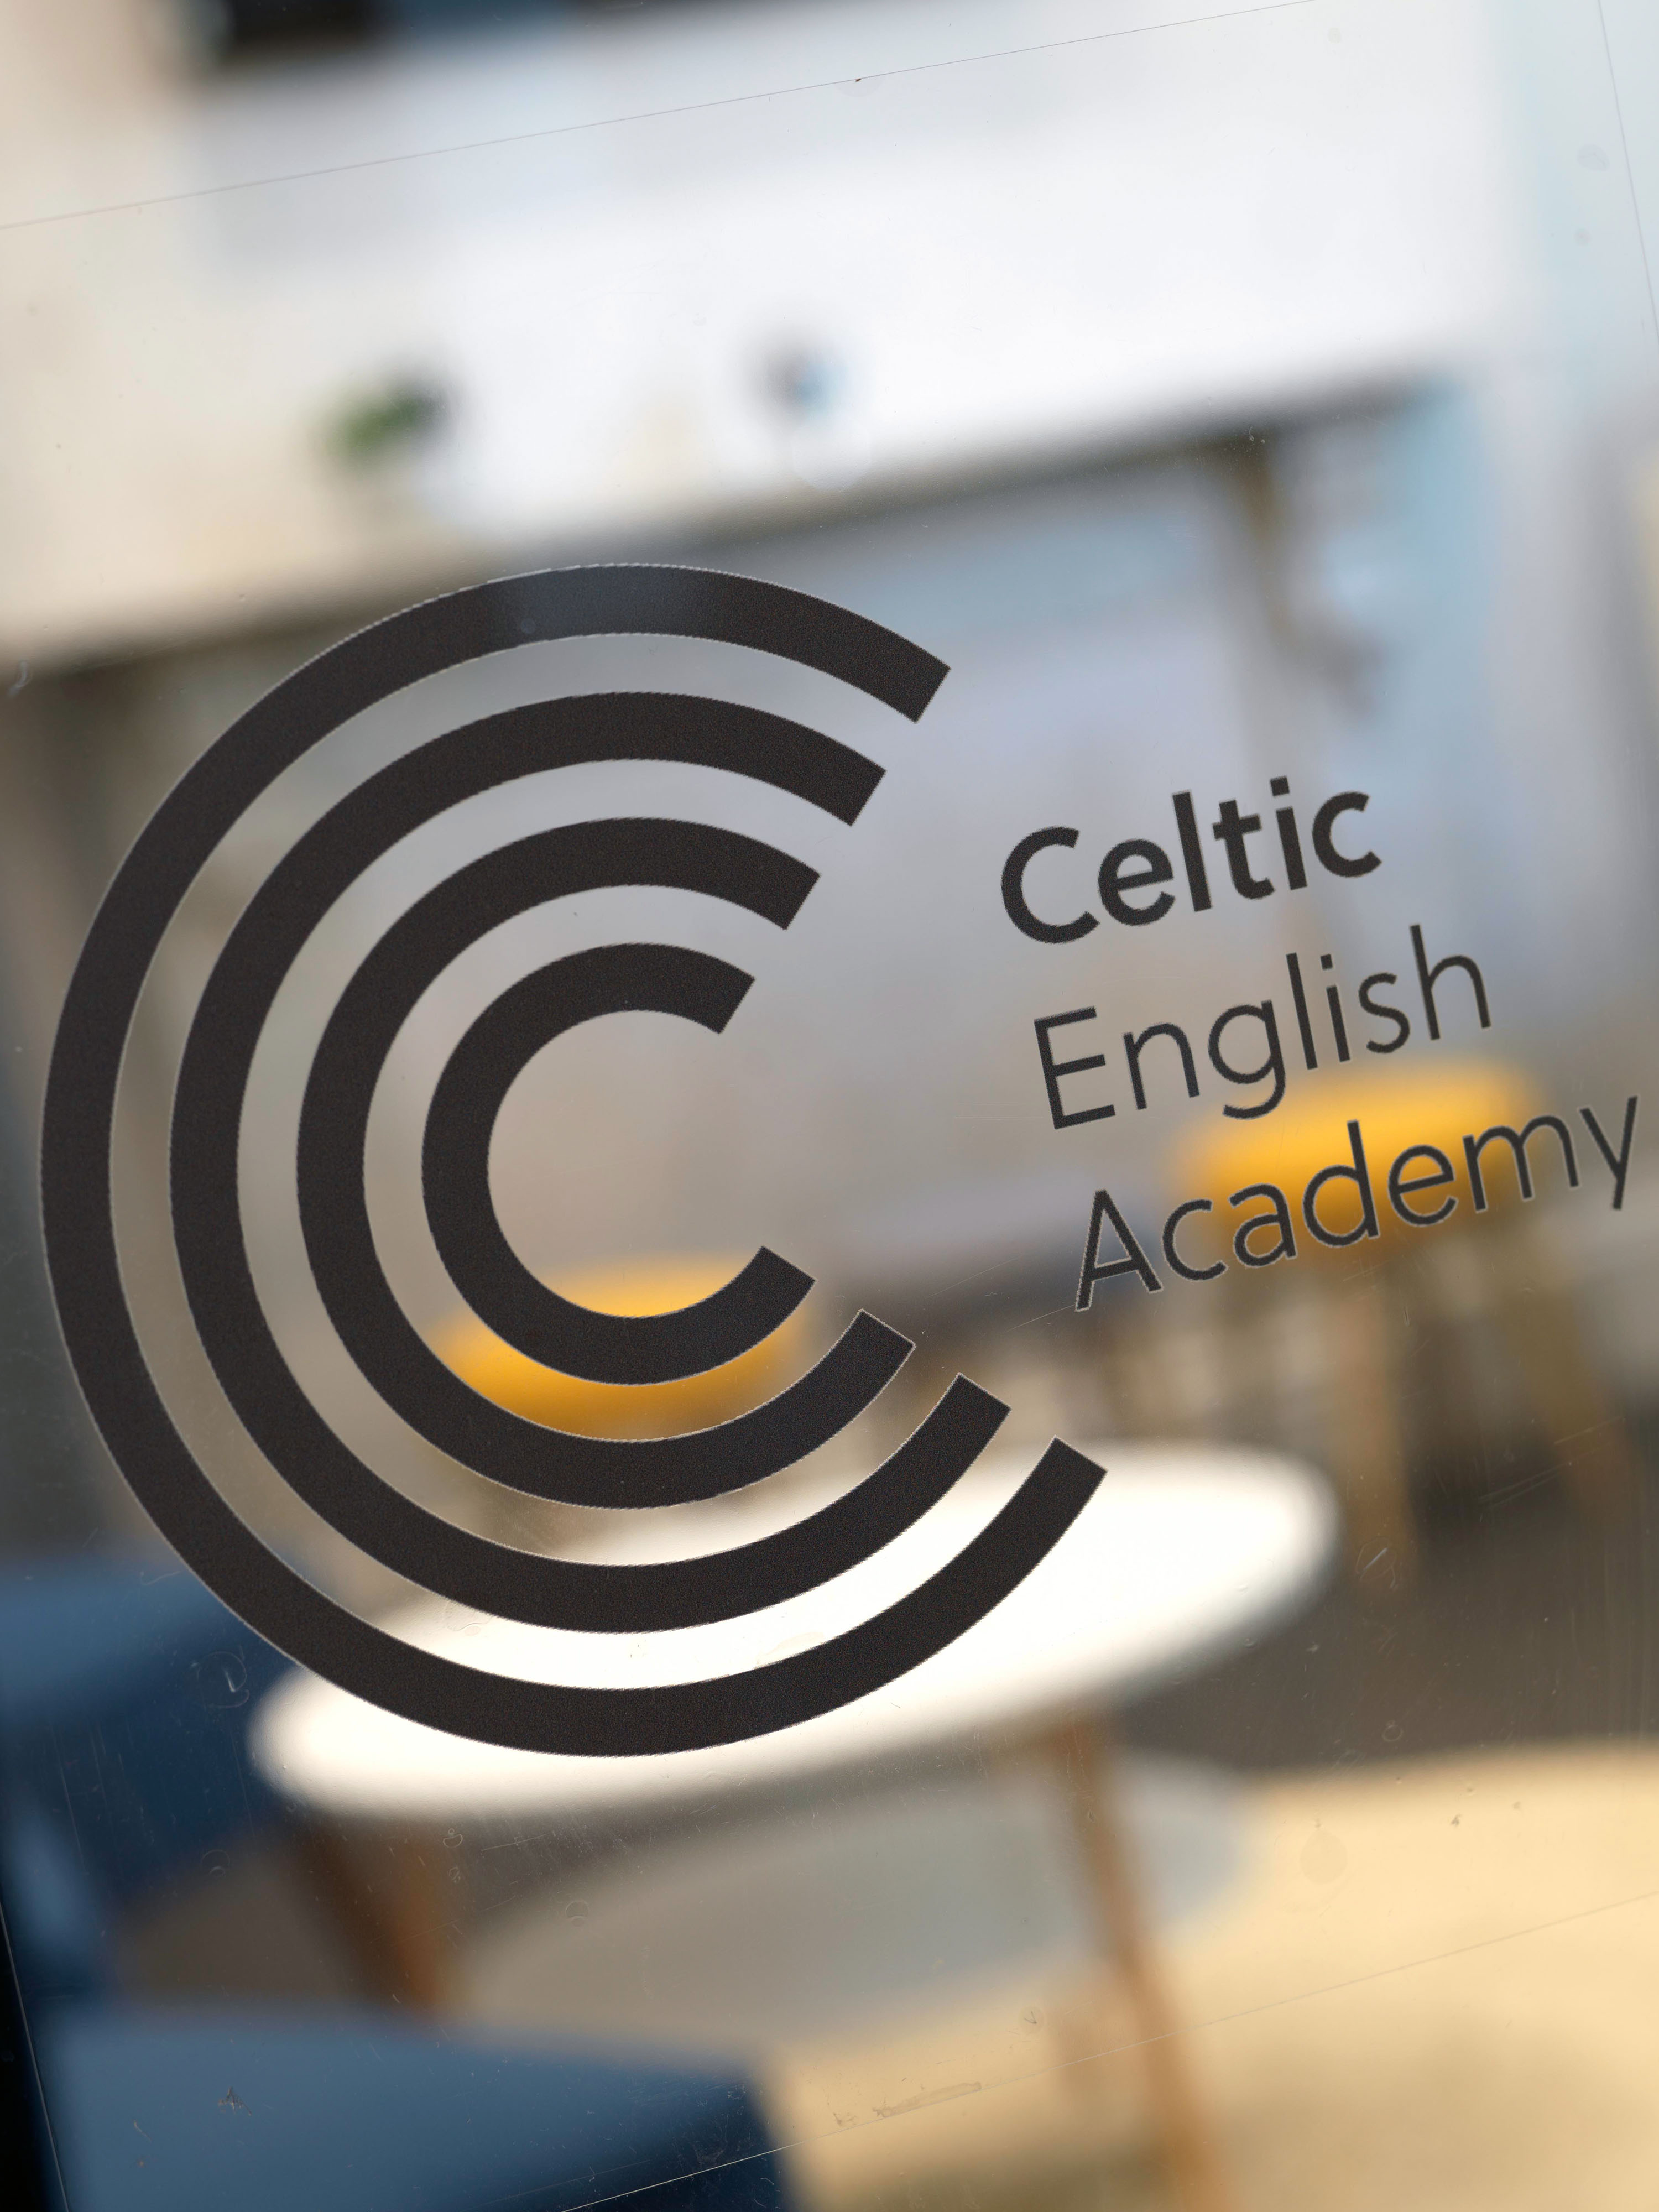 Celtic English Academy Sign